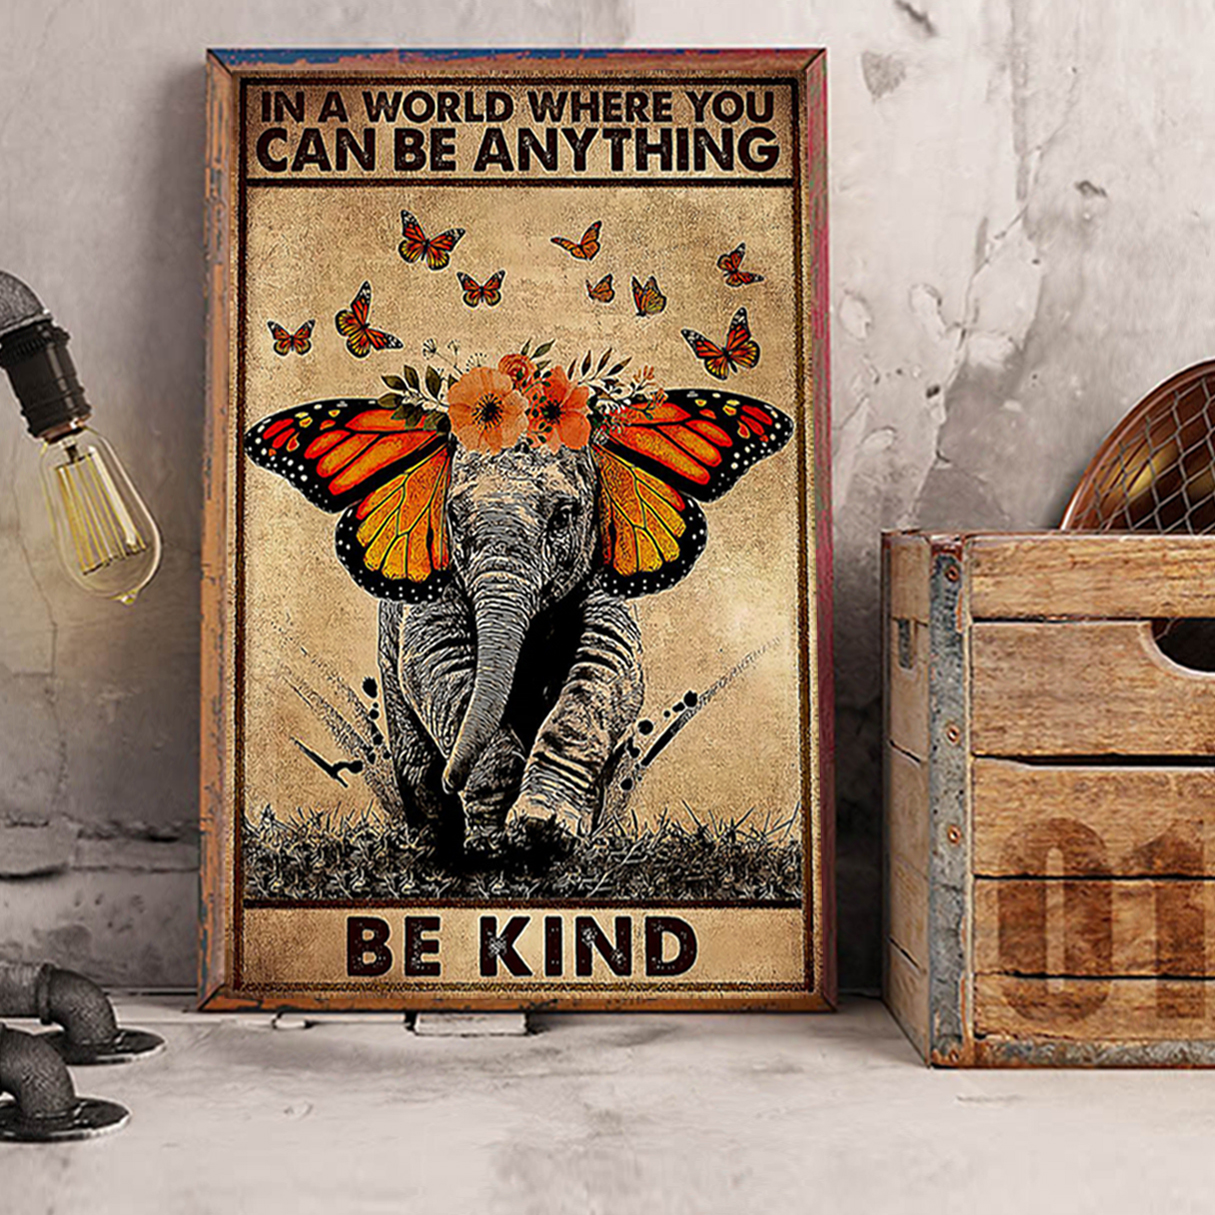 Butterfly elephant in a world where you can be anything be kind poster A1